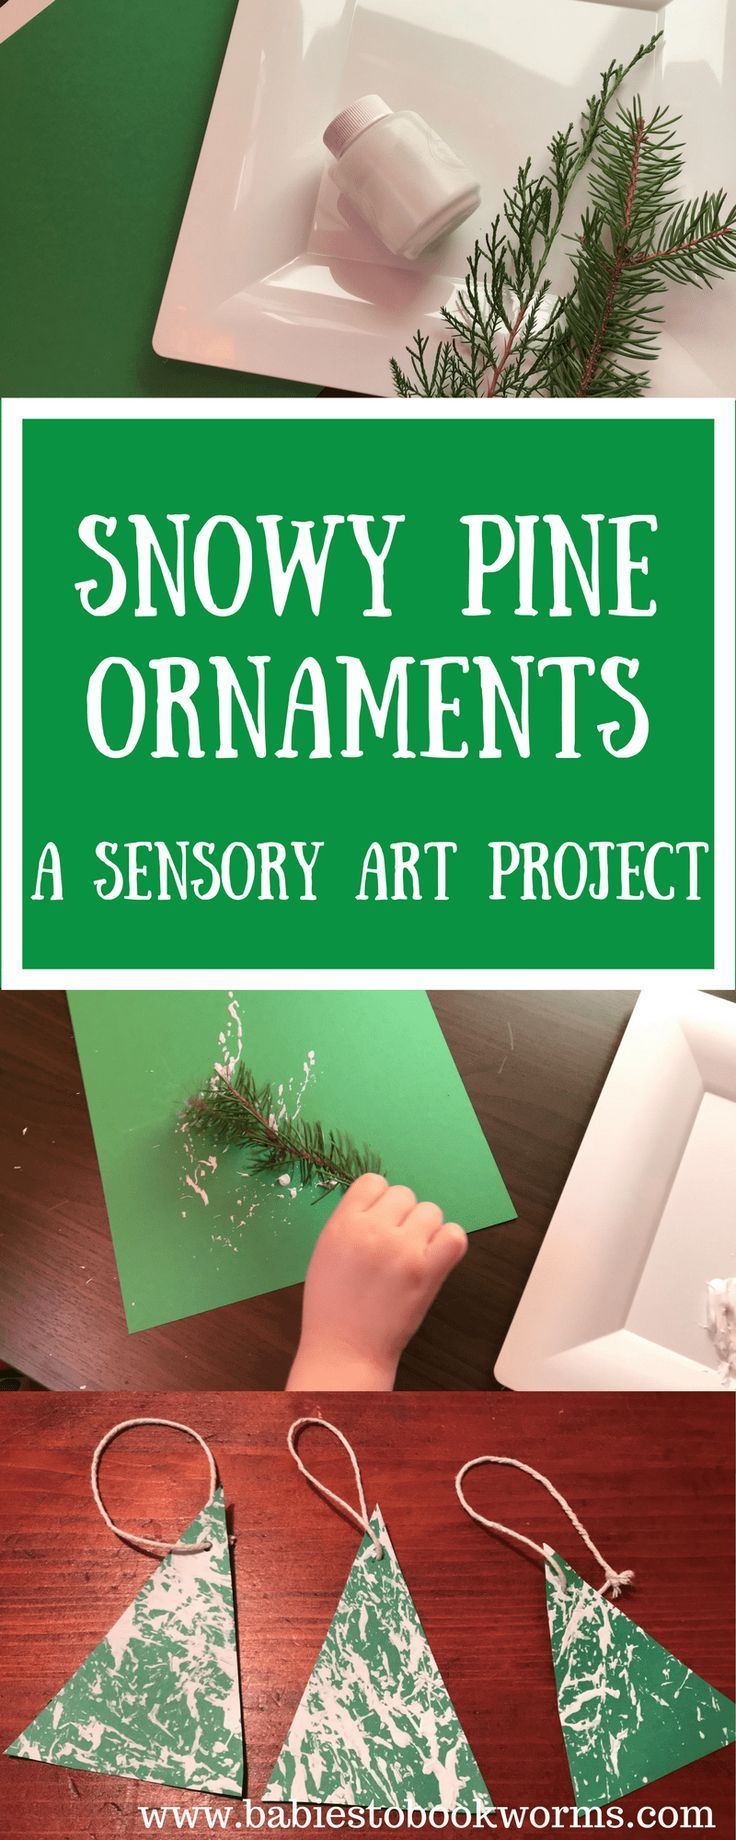 Use pine branches to create snow covered Christmas tree ornaments with this #sensory art project! #ChristmasBooks #KidsBooks #ChristmasCrafts